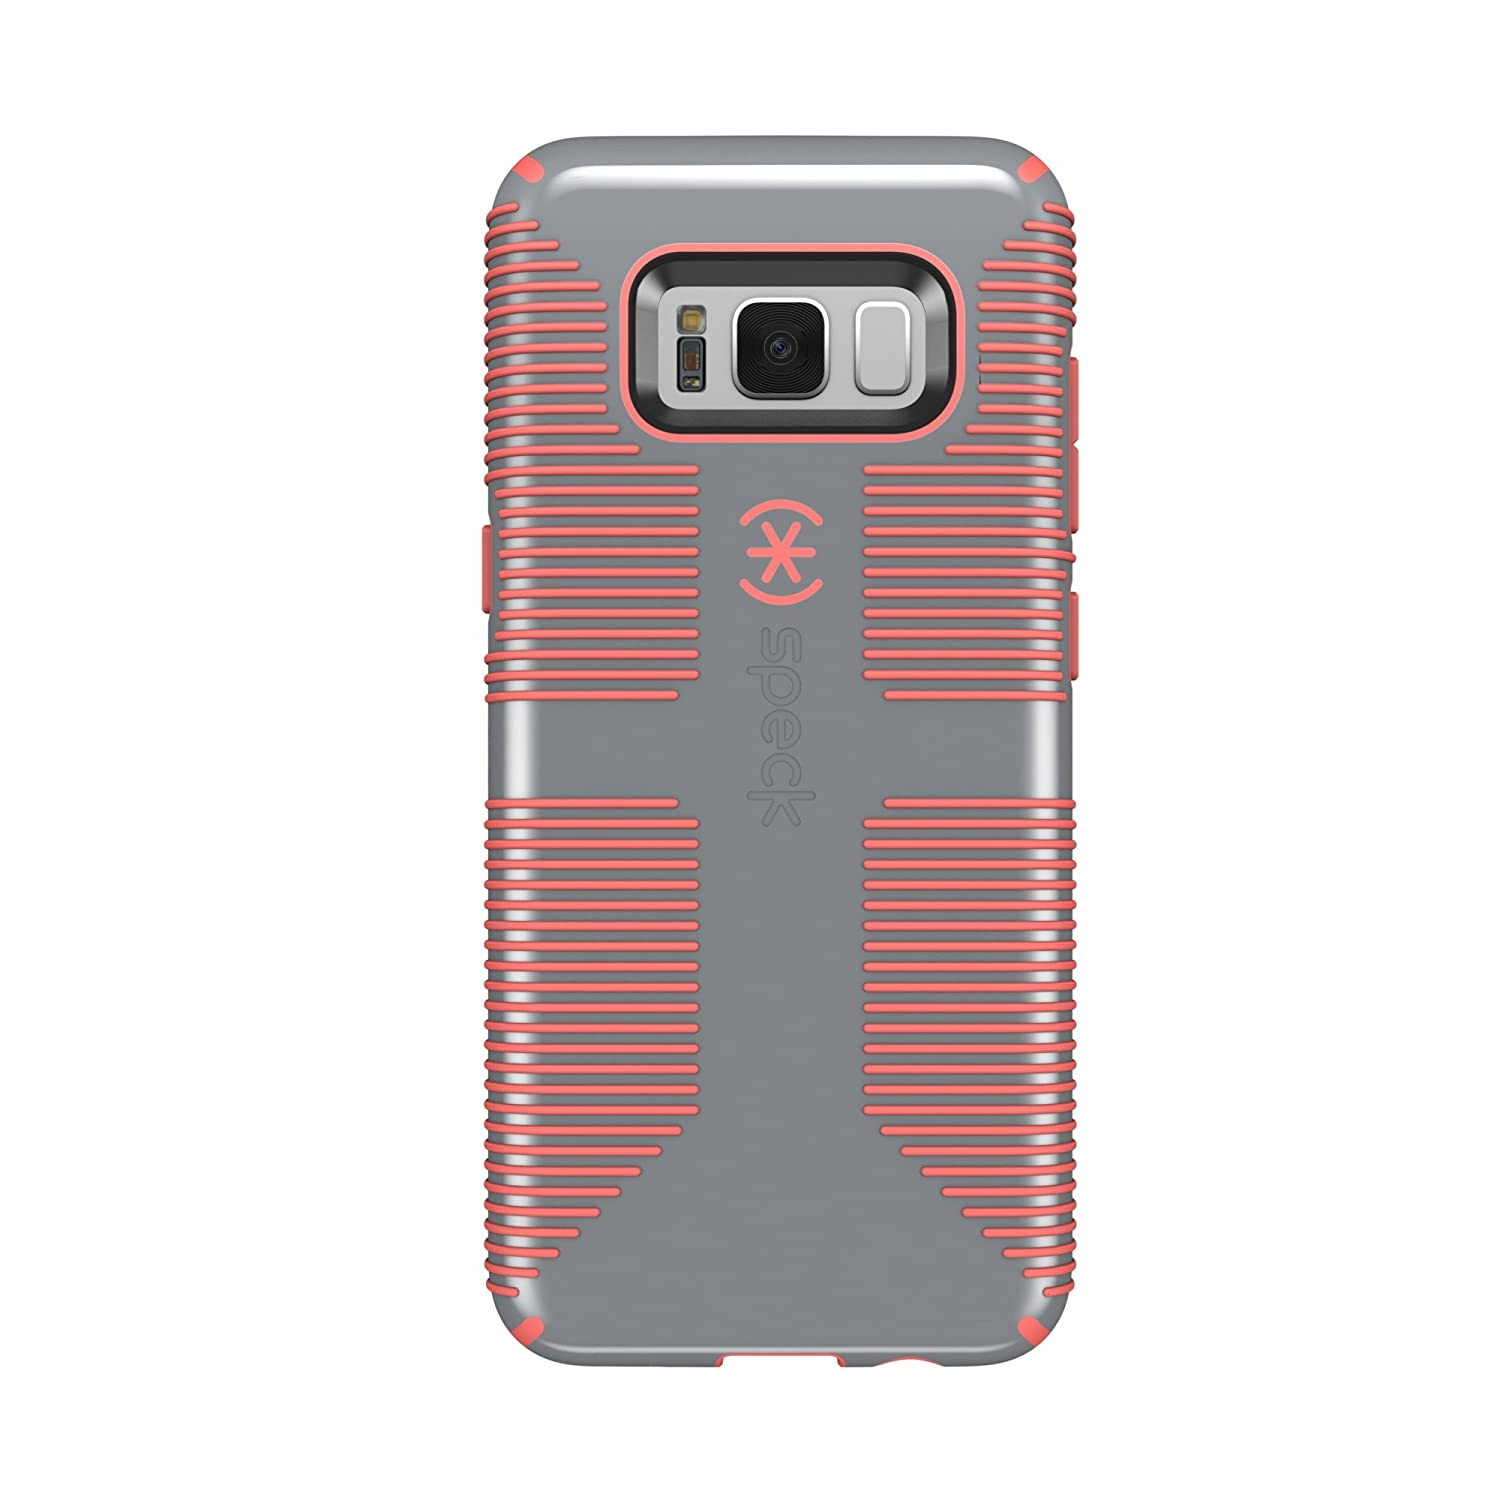 Speck S 90211 B994 Candyshell Grip Cell Phone Case For Galaxy S8